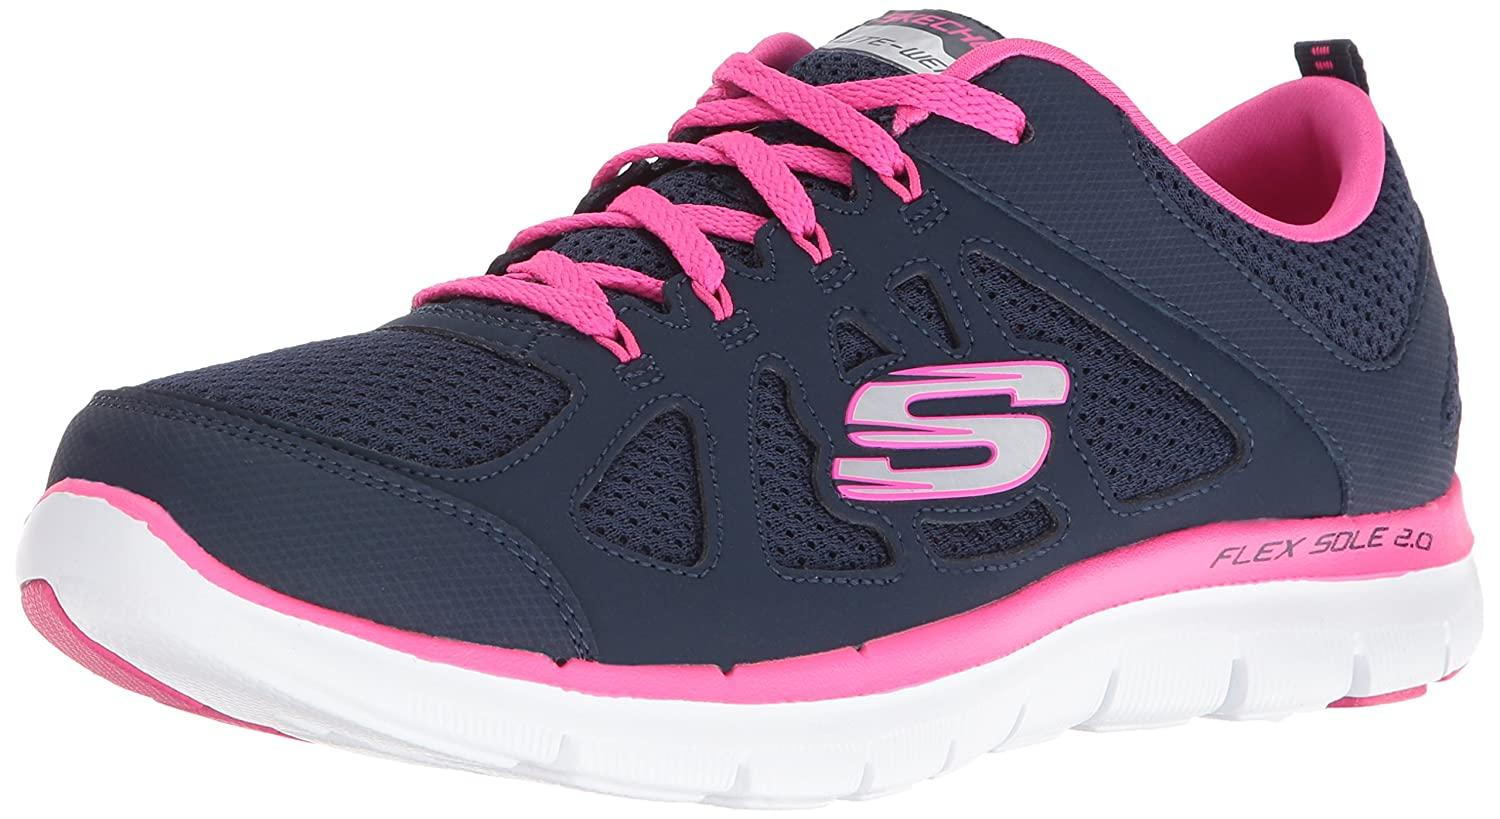 Skechers Sport Women's Flex Appeal 2.0 Simplistic Fashion Sneaker B01EOSW16O 8 B(M) US|Navy Hot Pink